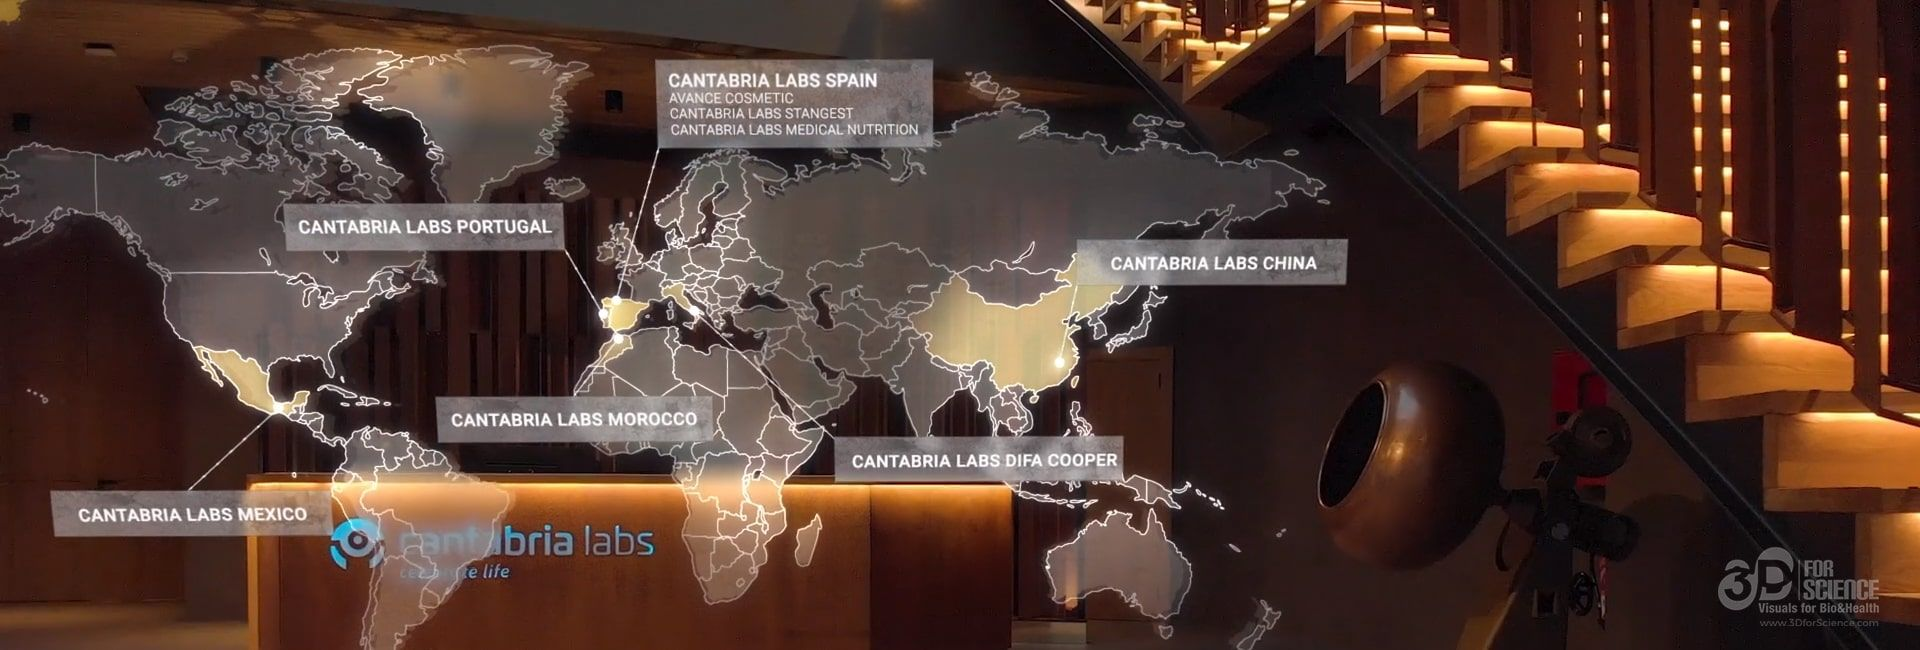 cantabria labs in the world